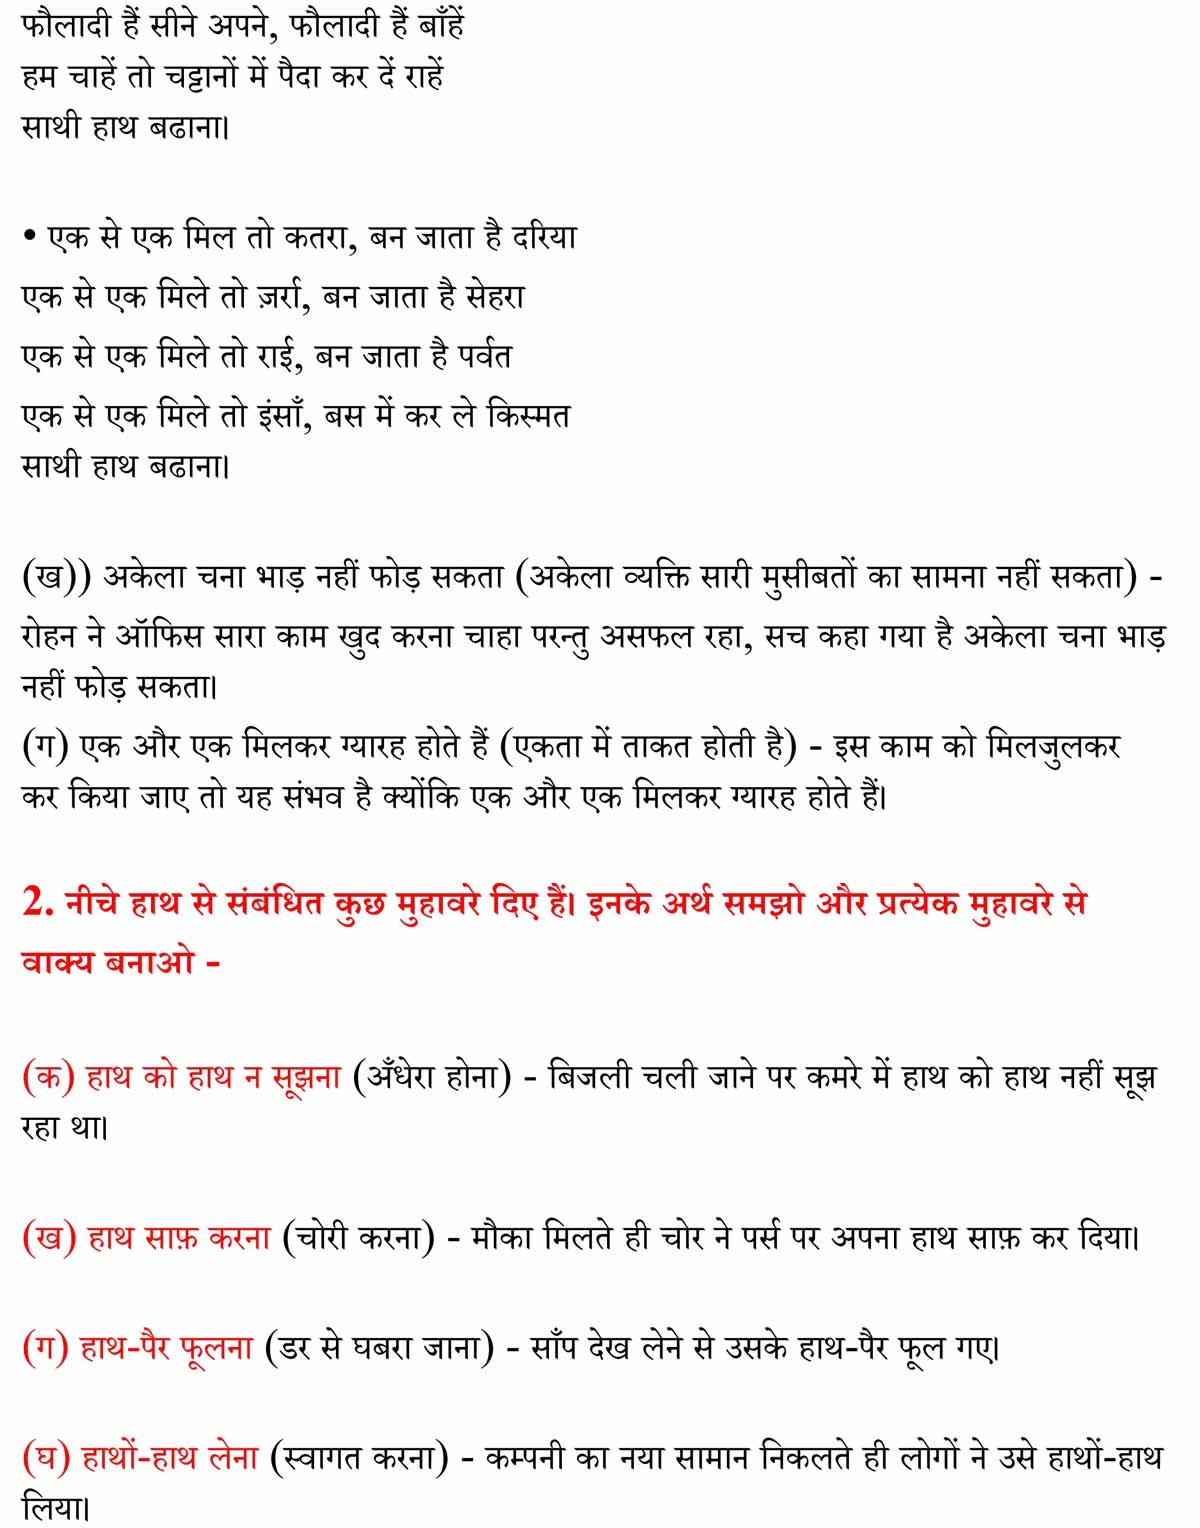 NCERT Solutions For Class 6 Hindi Vasant - Chapter 7